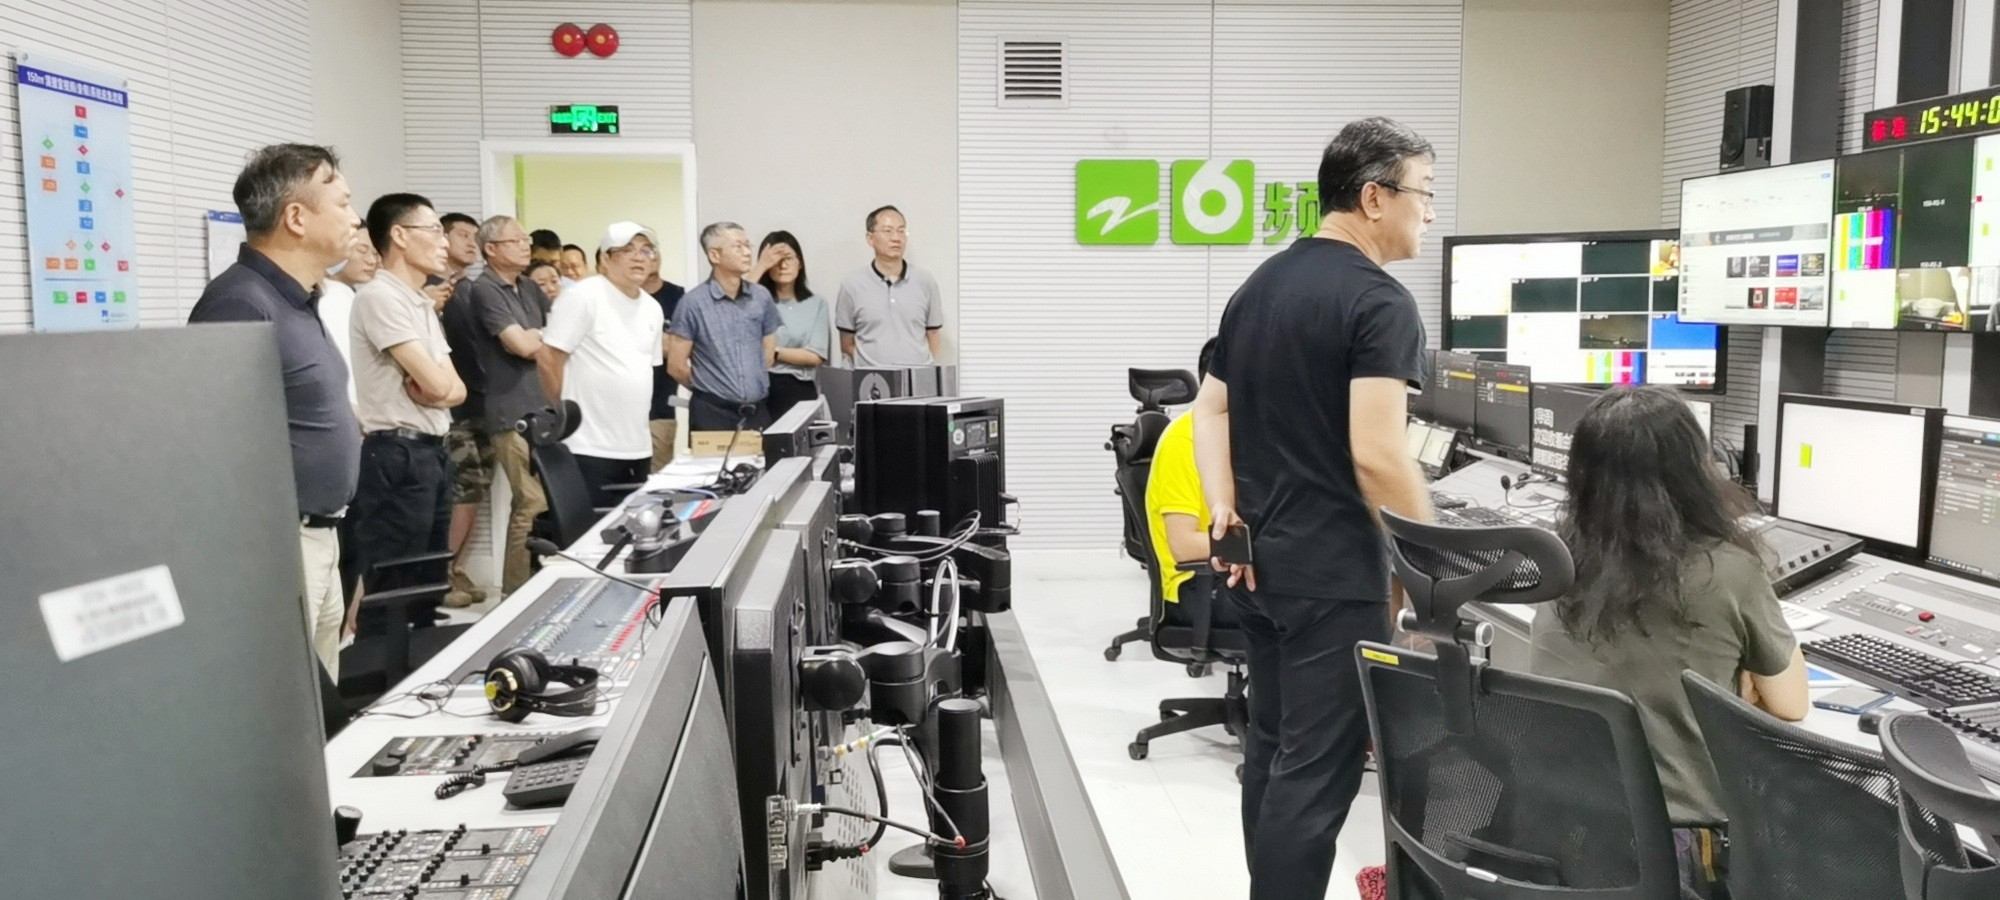 SEEDER camera support equipment for Broadcast television industry